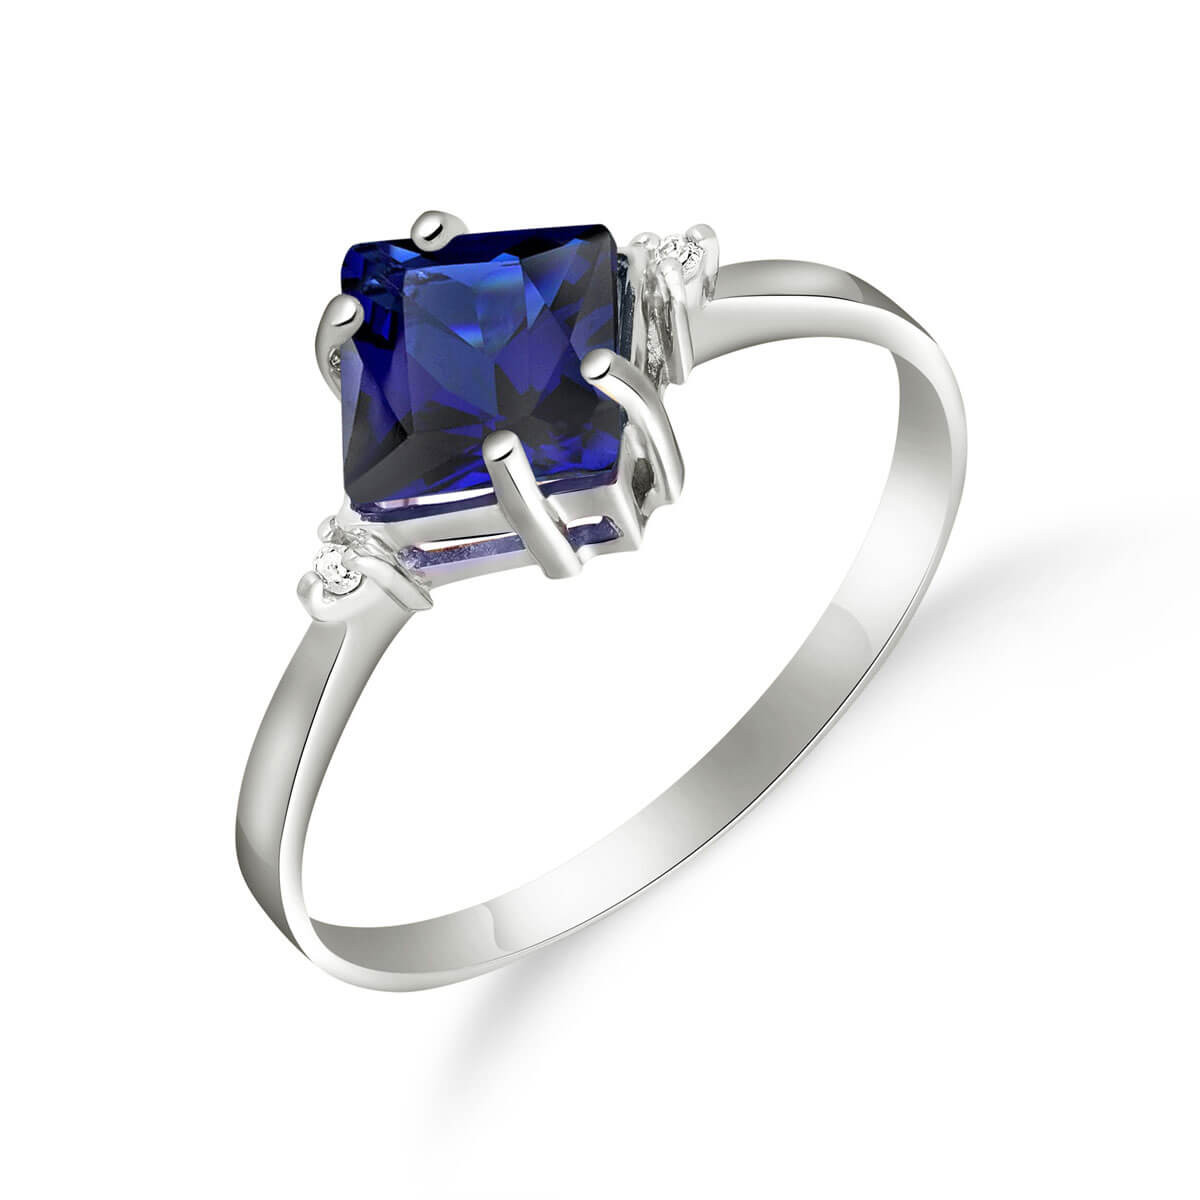 Sapphire & Diamond Princess Ring in 9ct White Gold